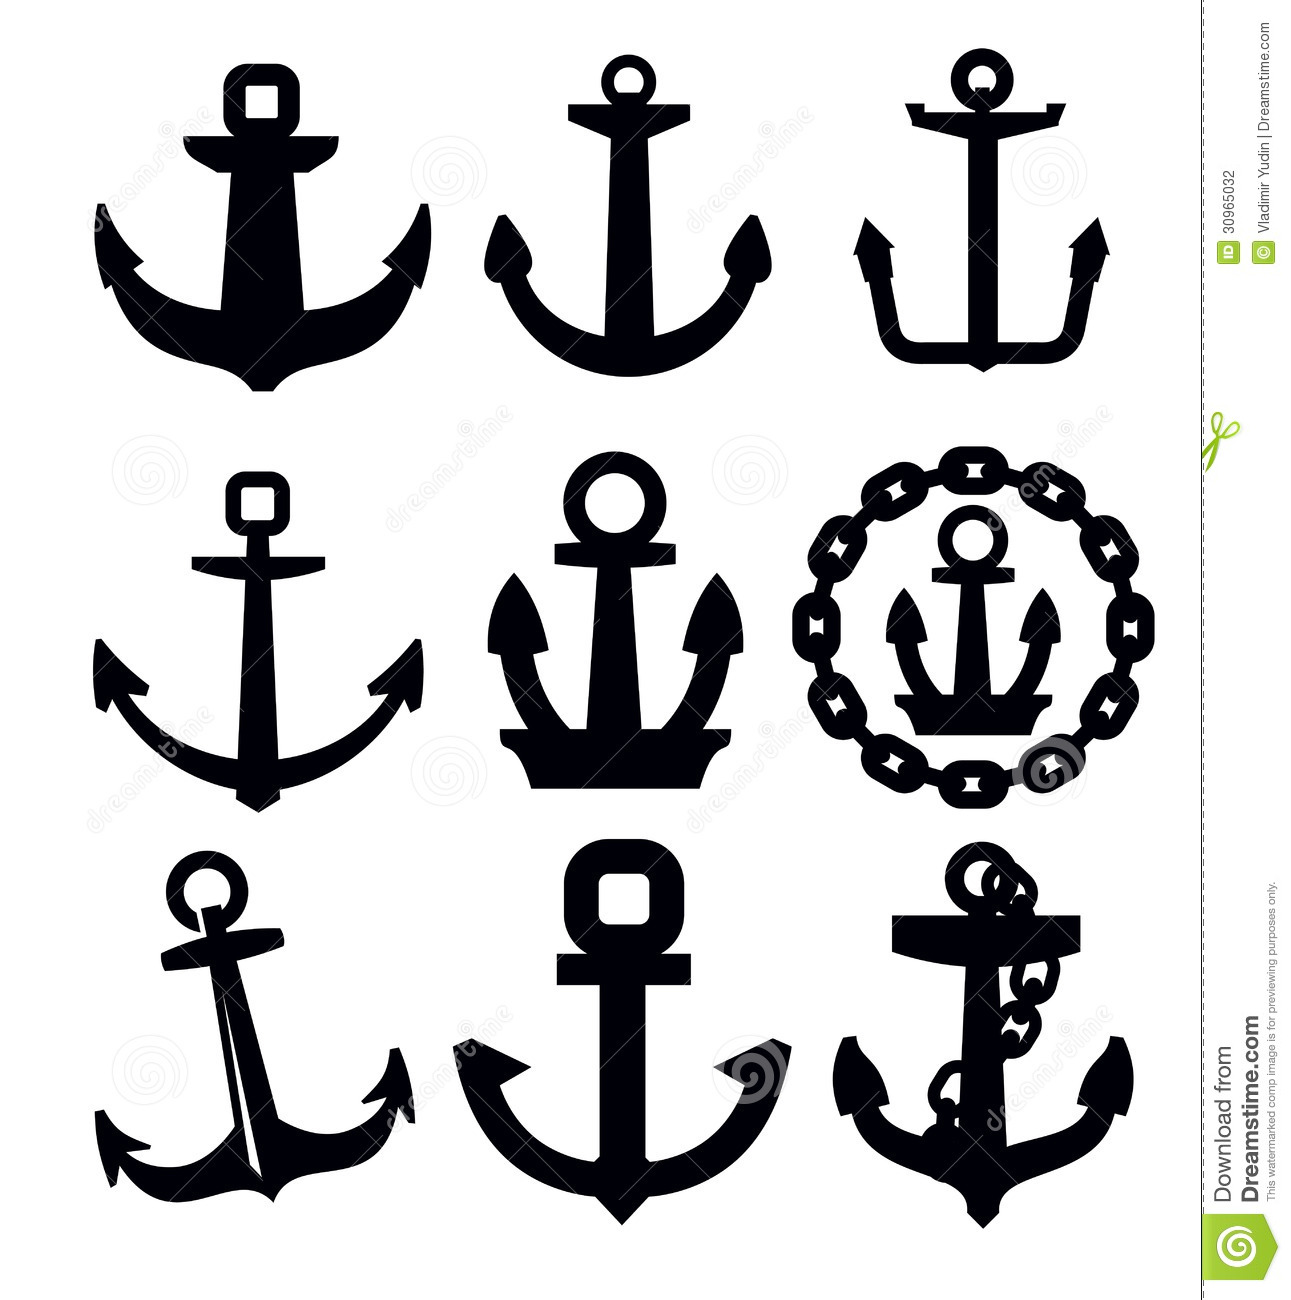 anchor icon set stock vector illustration of chain  water anchor with rope clipart Anchor with Rope Clip Art Black and White